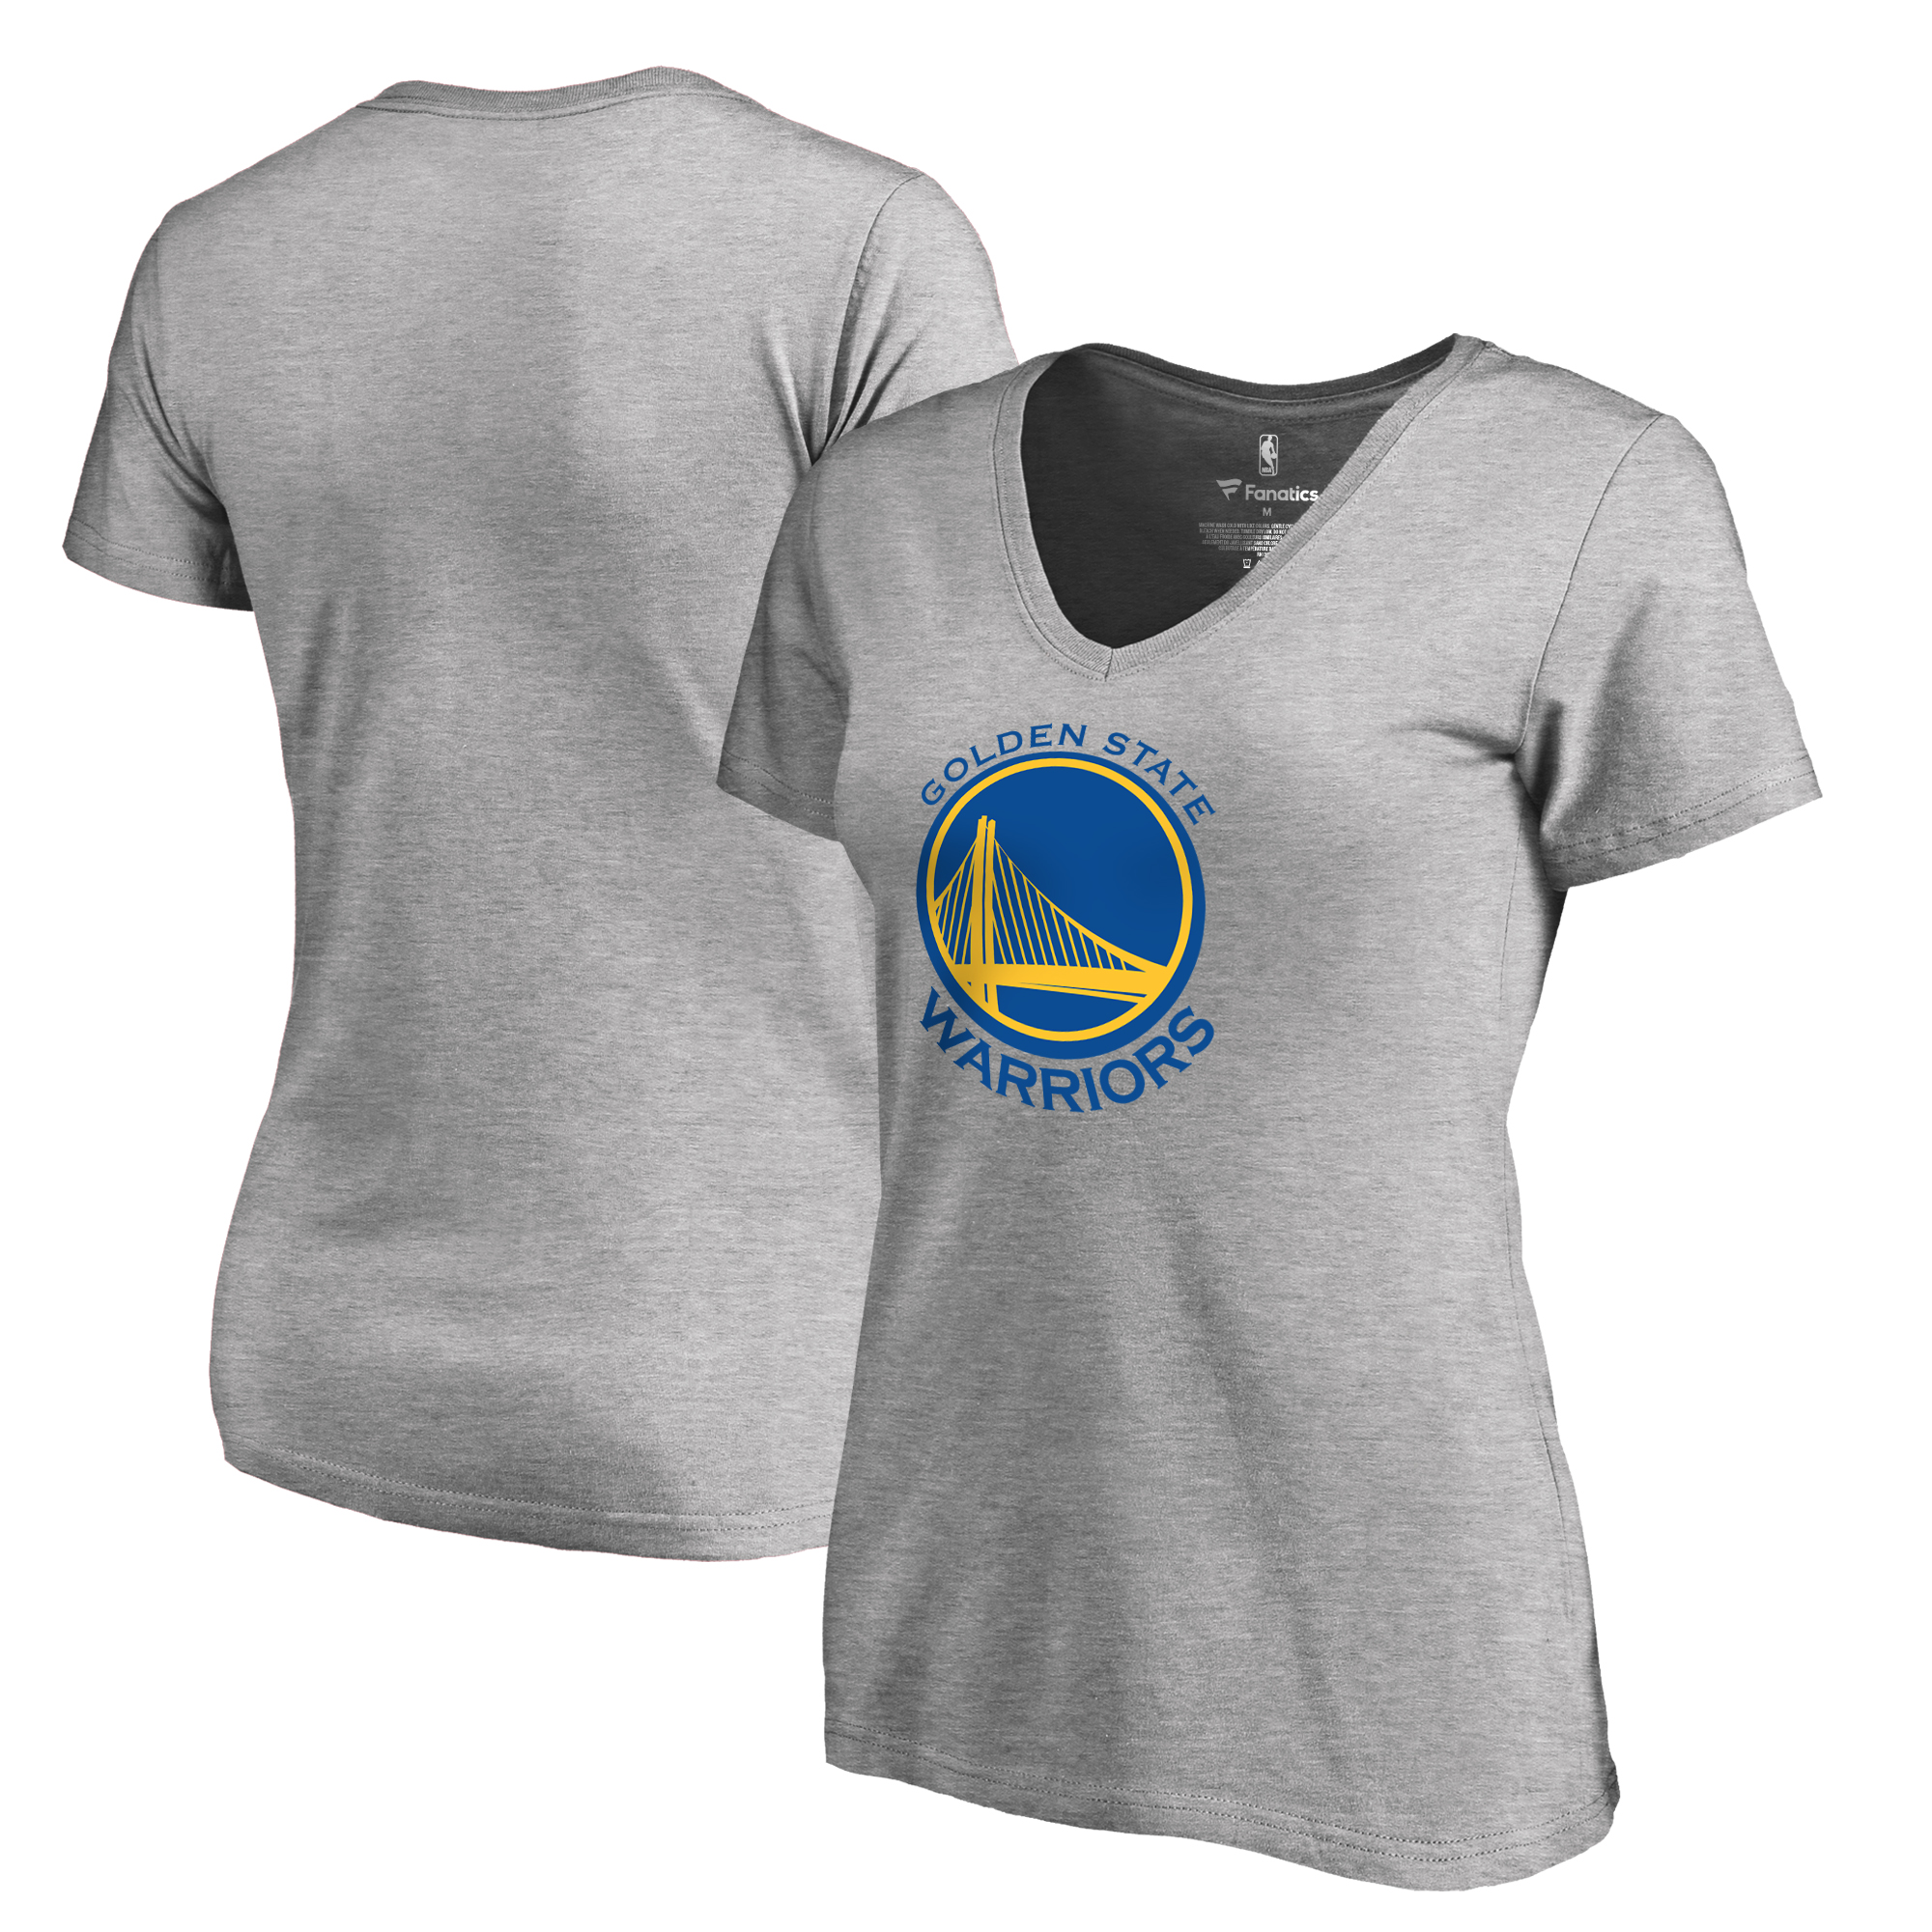 Golden State Warriors Fanatics Branded Women's Plus Sizes Team Primary Logo T-Shirt - Ash